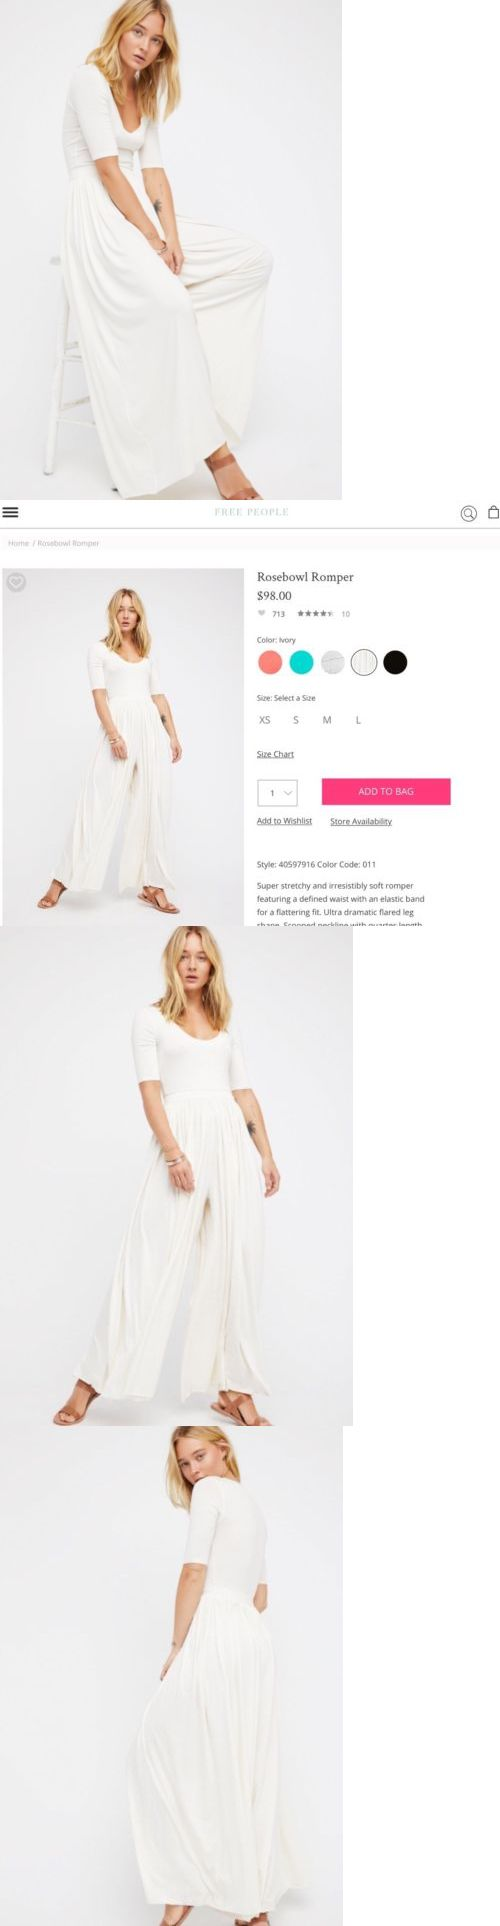 Jumpsuits And Rompers: New Free People Beach Rosebowl Romper Size Large White Wide Leg Jumpsuit -> BUY IT NOW ONLY: $89.99 on eBay!